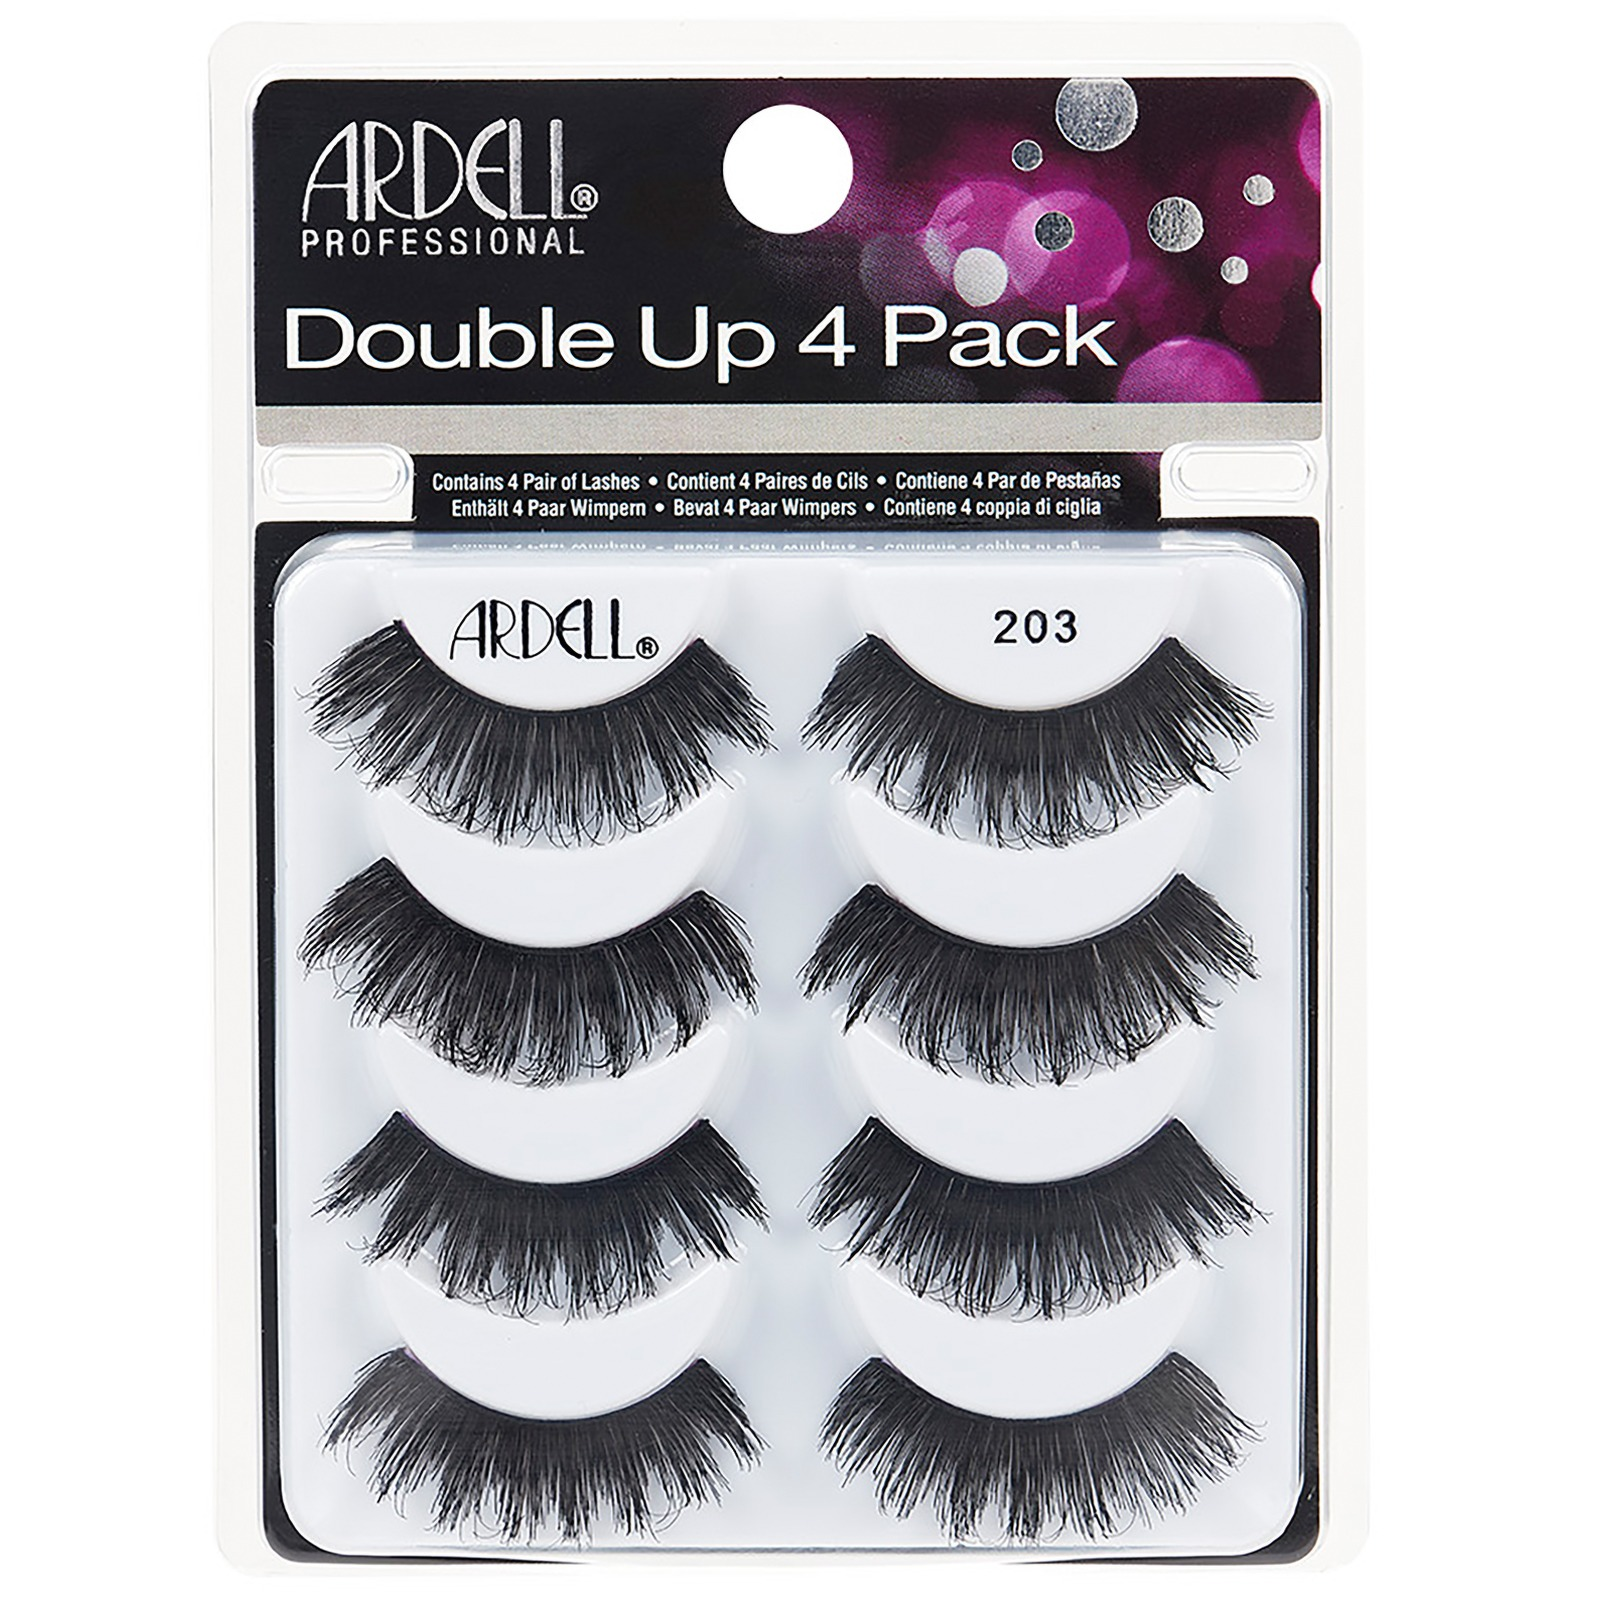 Ardell Multipack Double Up 203 Pack of 4 Pairs